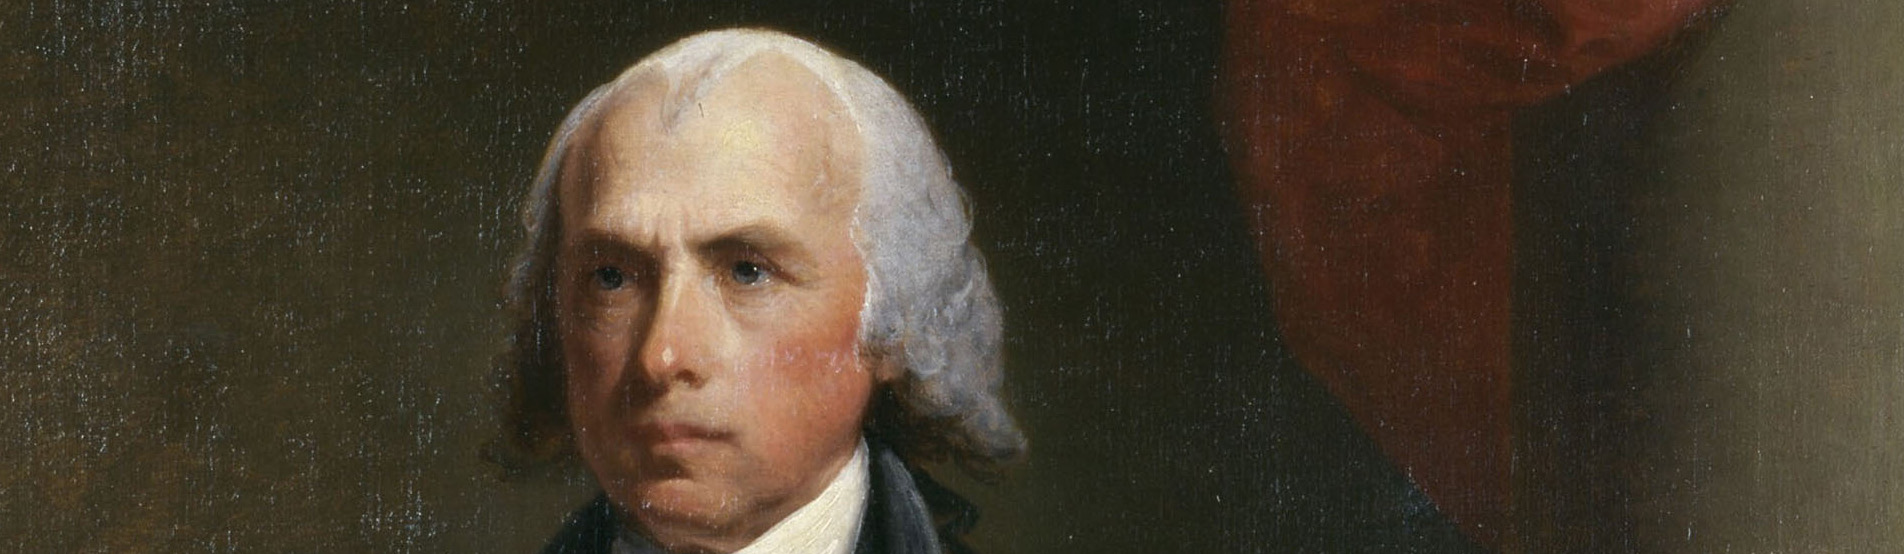 james madison essay These james madison university college application essays were written by students accepted at james madison university.